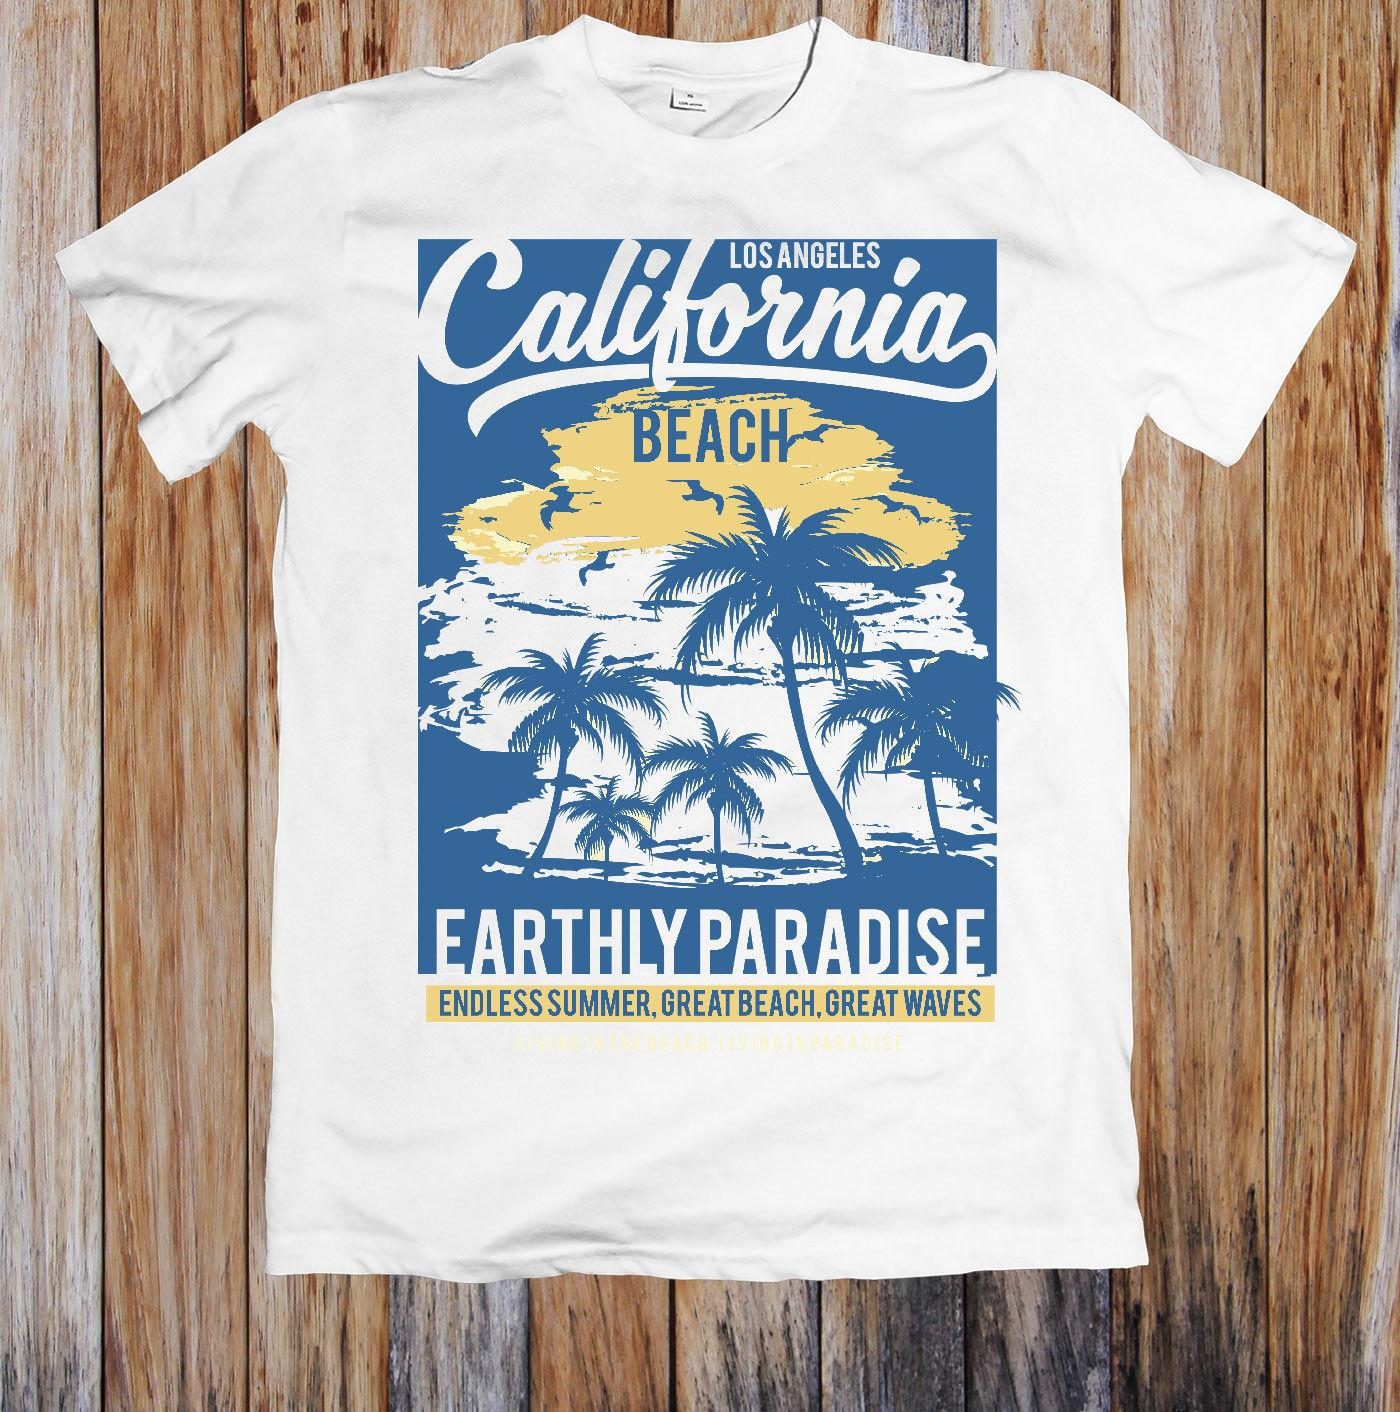 90d0a0a9ce6d45 CALIFORNIA BEACH EARTHLY PARADISE UNISEX T SHIRT Tees Design T Shirt Of The  Day From Crazytomorrow40